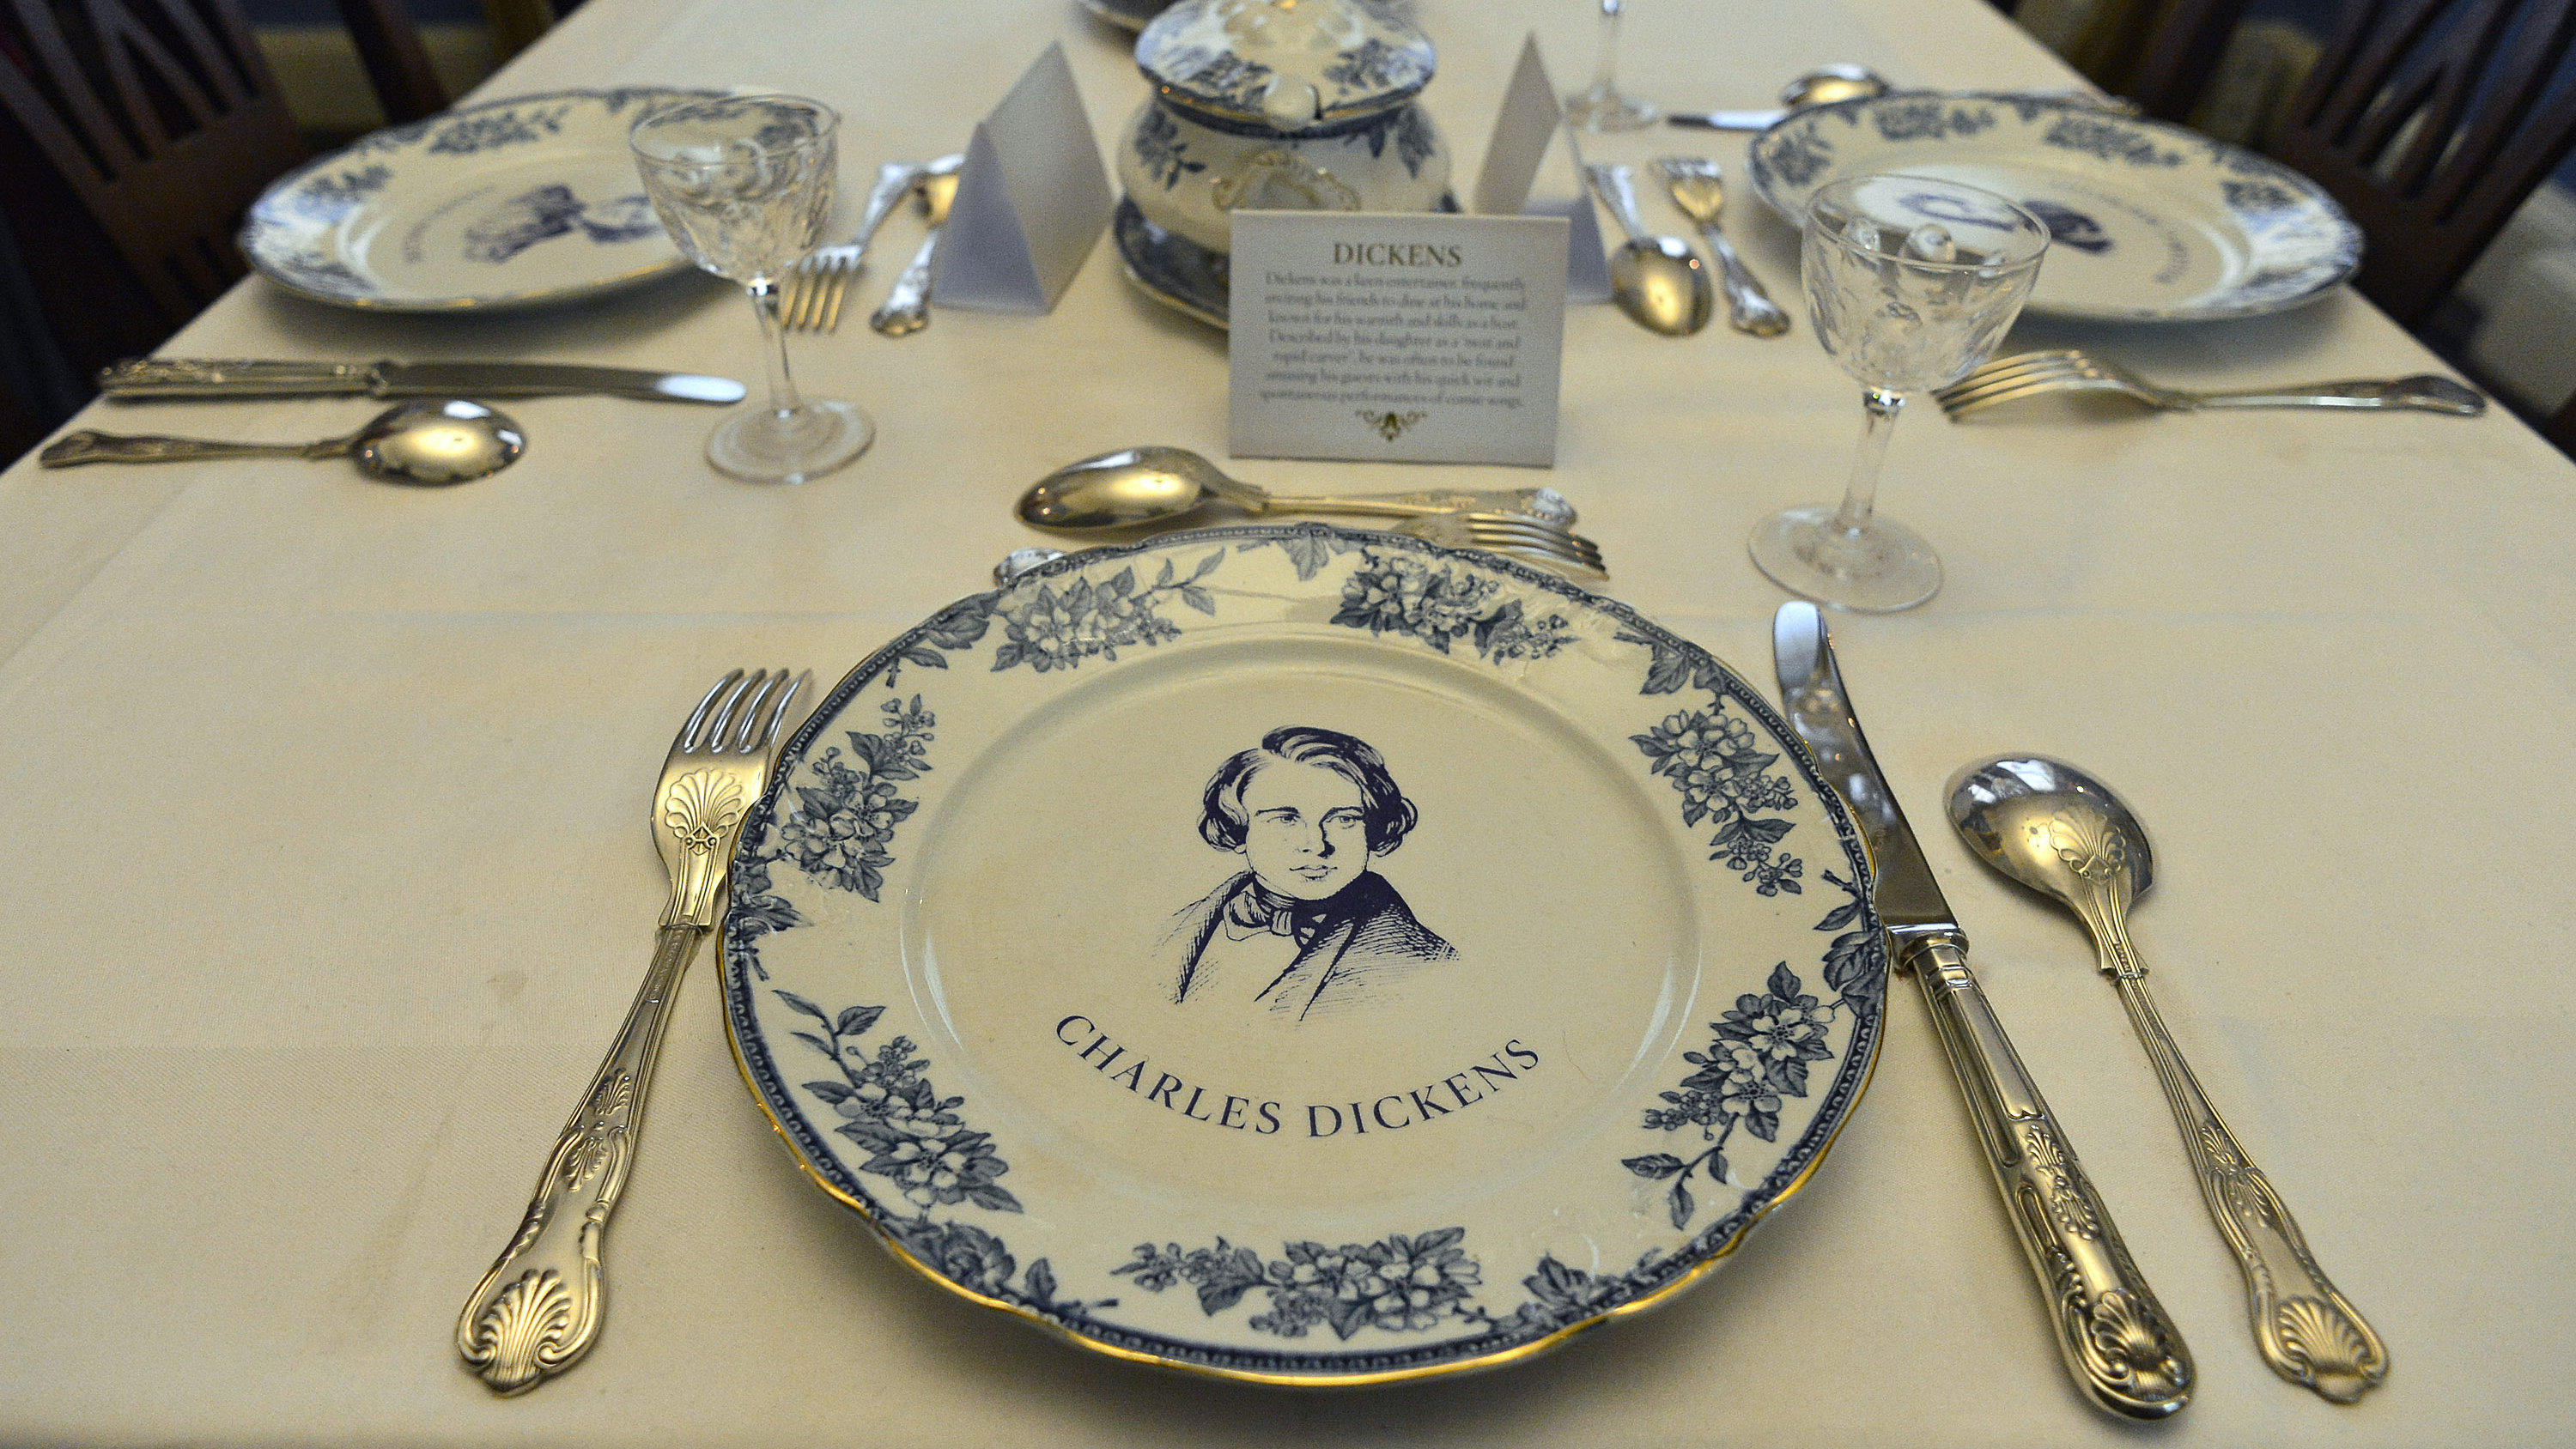 The laid table is seen in the dining room of the Charles Dickens Museum in central London December 10, 2012. The former London home of Charles Dickens reopened on Monday, after an eight-month, 3.1 million GBP ($5 million) refurbishment celebrating the author's bicentenary.